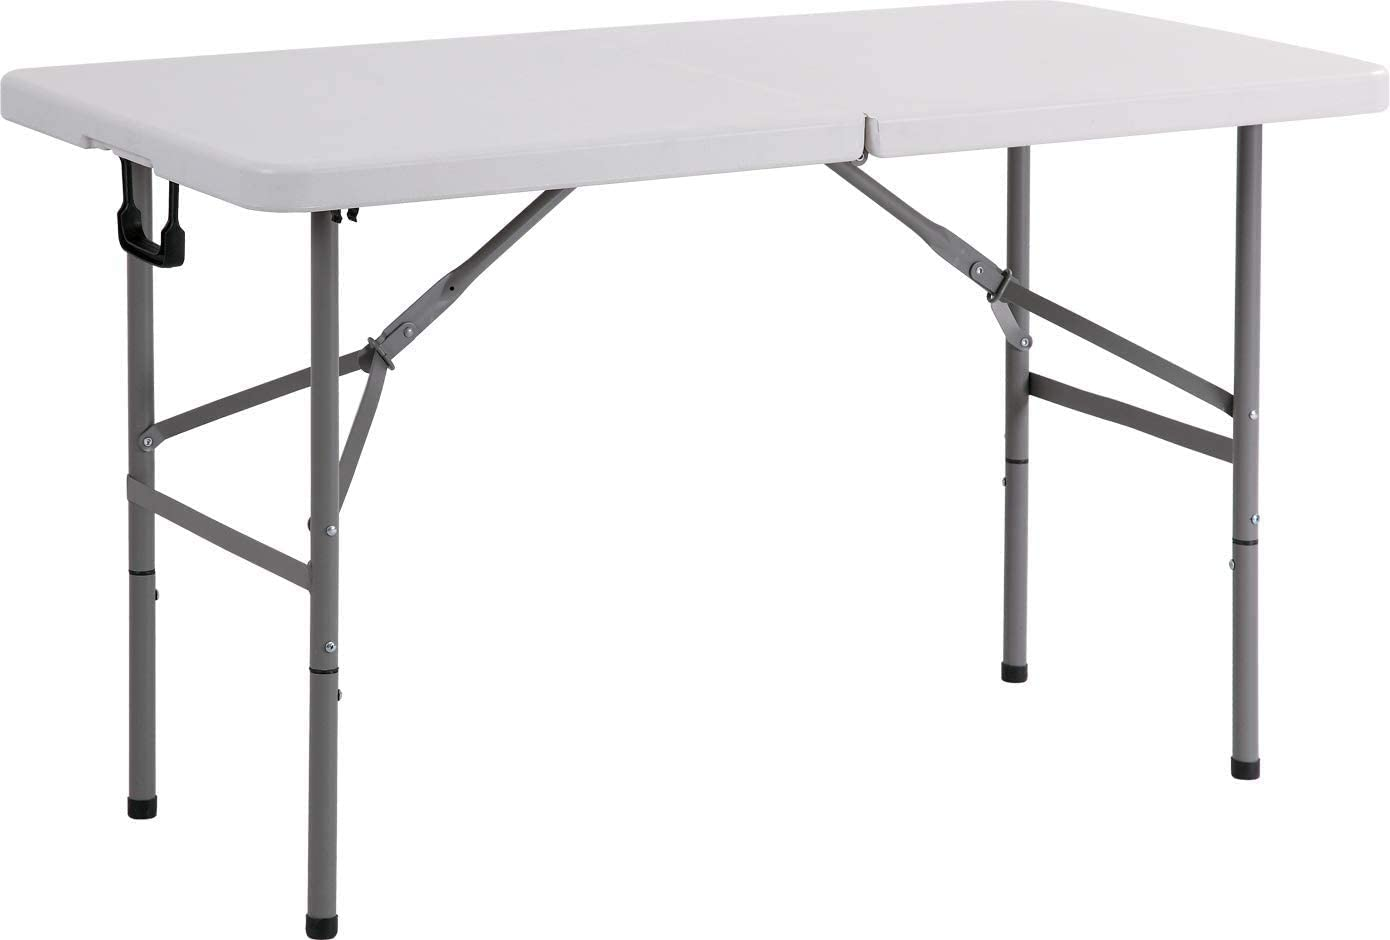 New Home Era Folding Utility Table, 4ft Fold-in-Half Portable Plastic Picnic Party Dining Camp Table